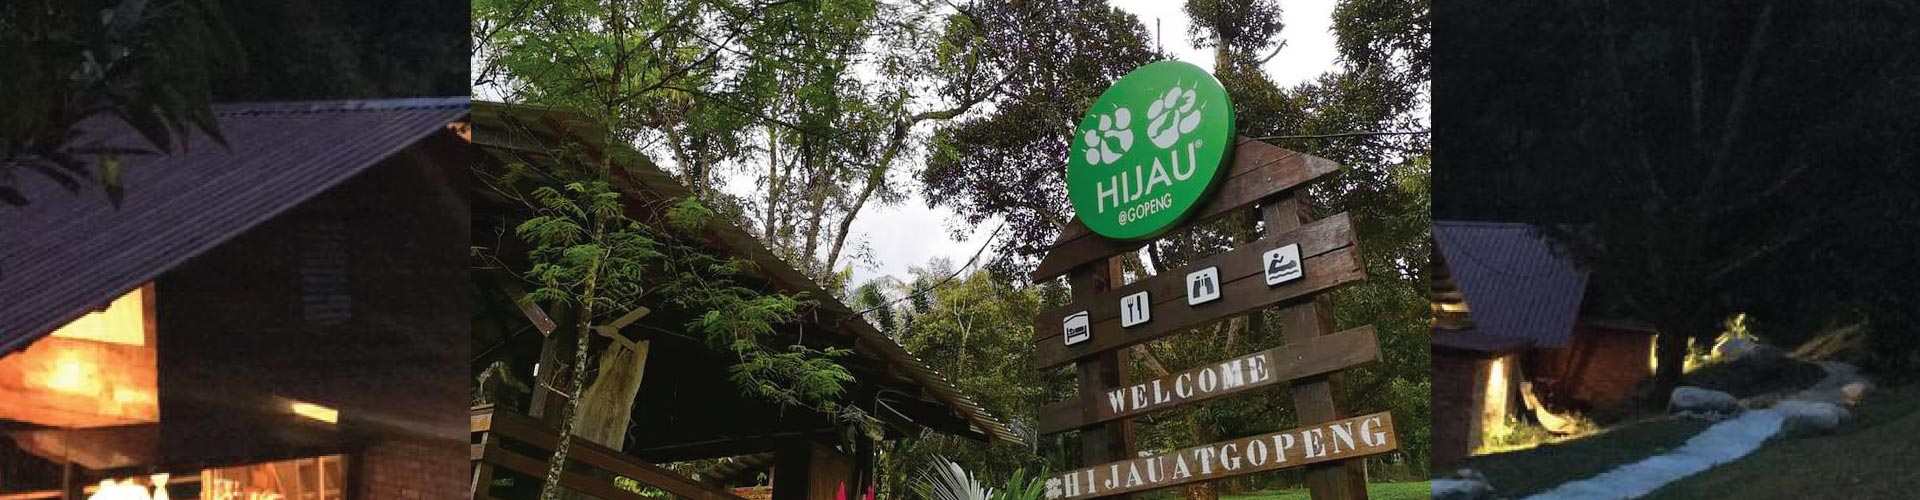 Tour - 2d1n Rainforest Staycation At Hijau @ Gopeng - Mysm42clp03kh - R7